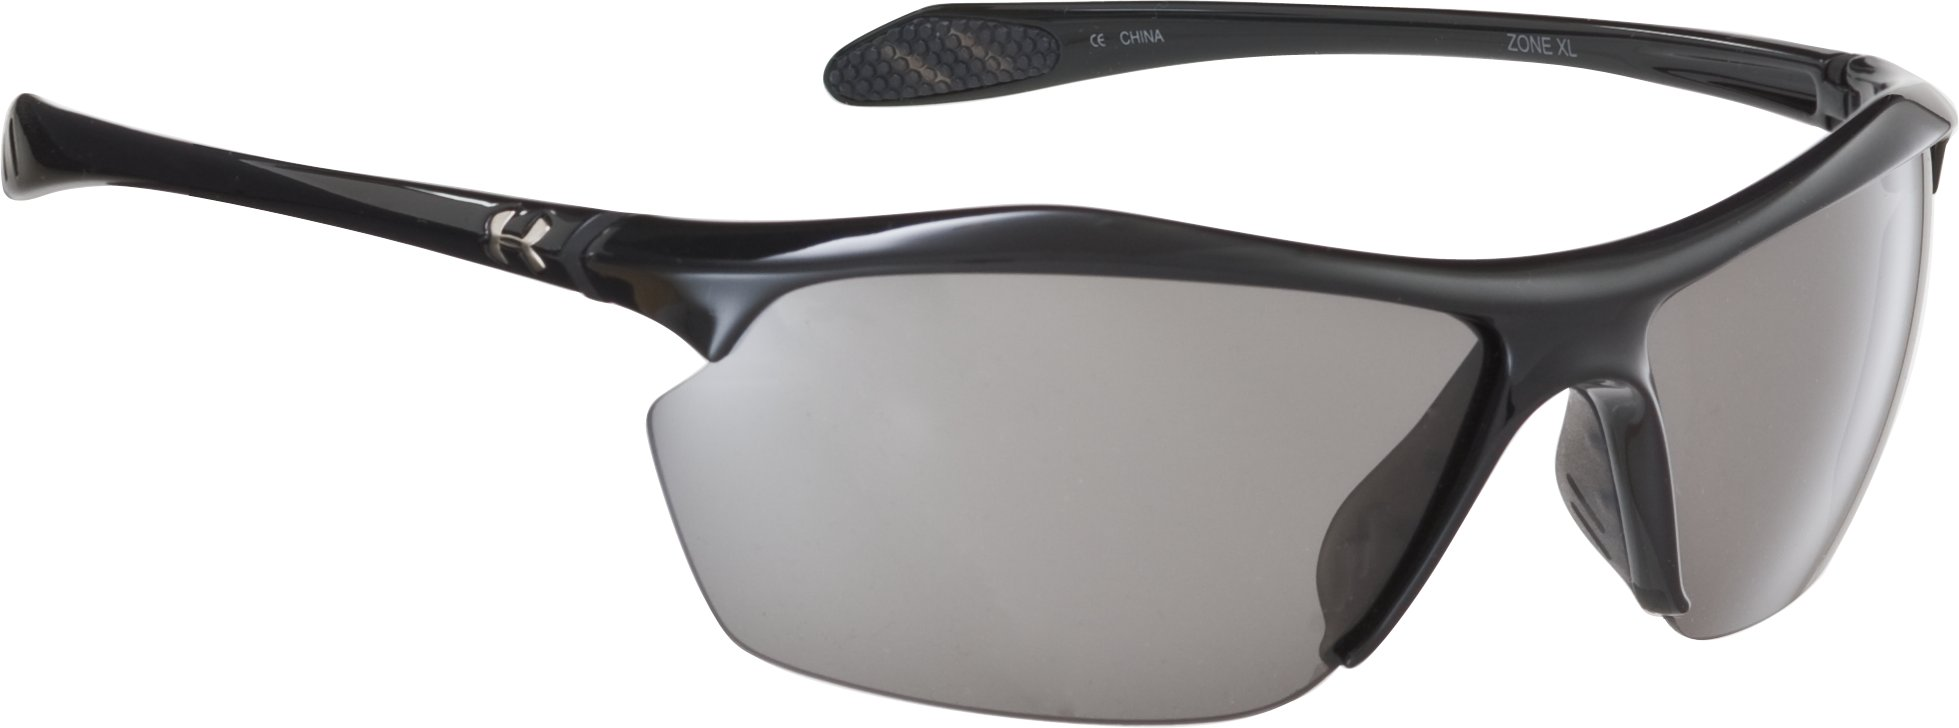 UA Zone XL Polarized Sunglasses, Shiny Black, zoomed image